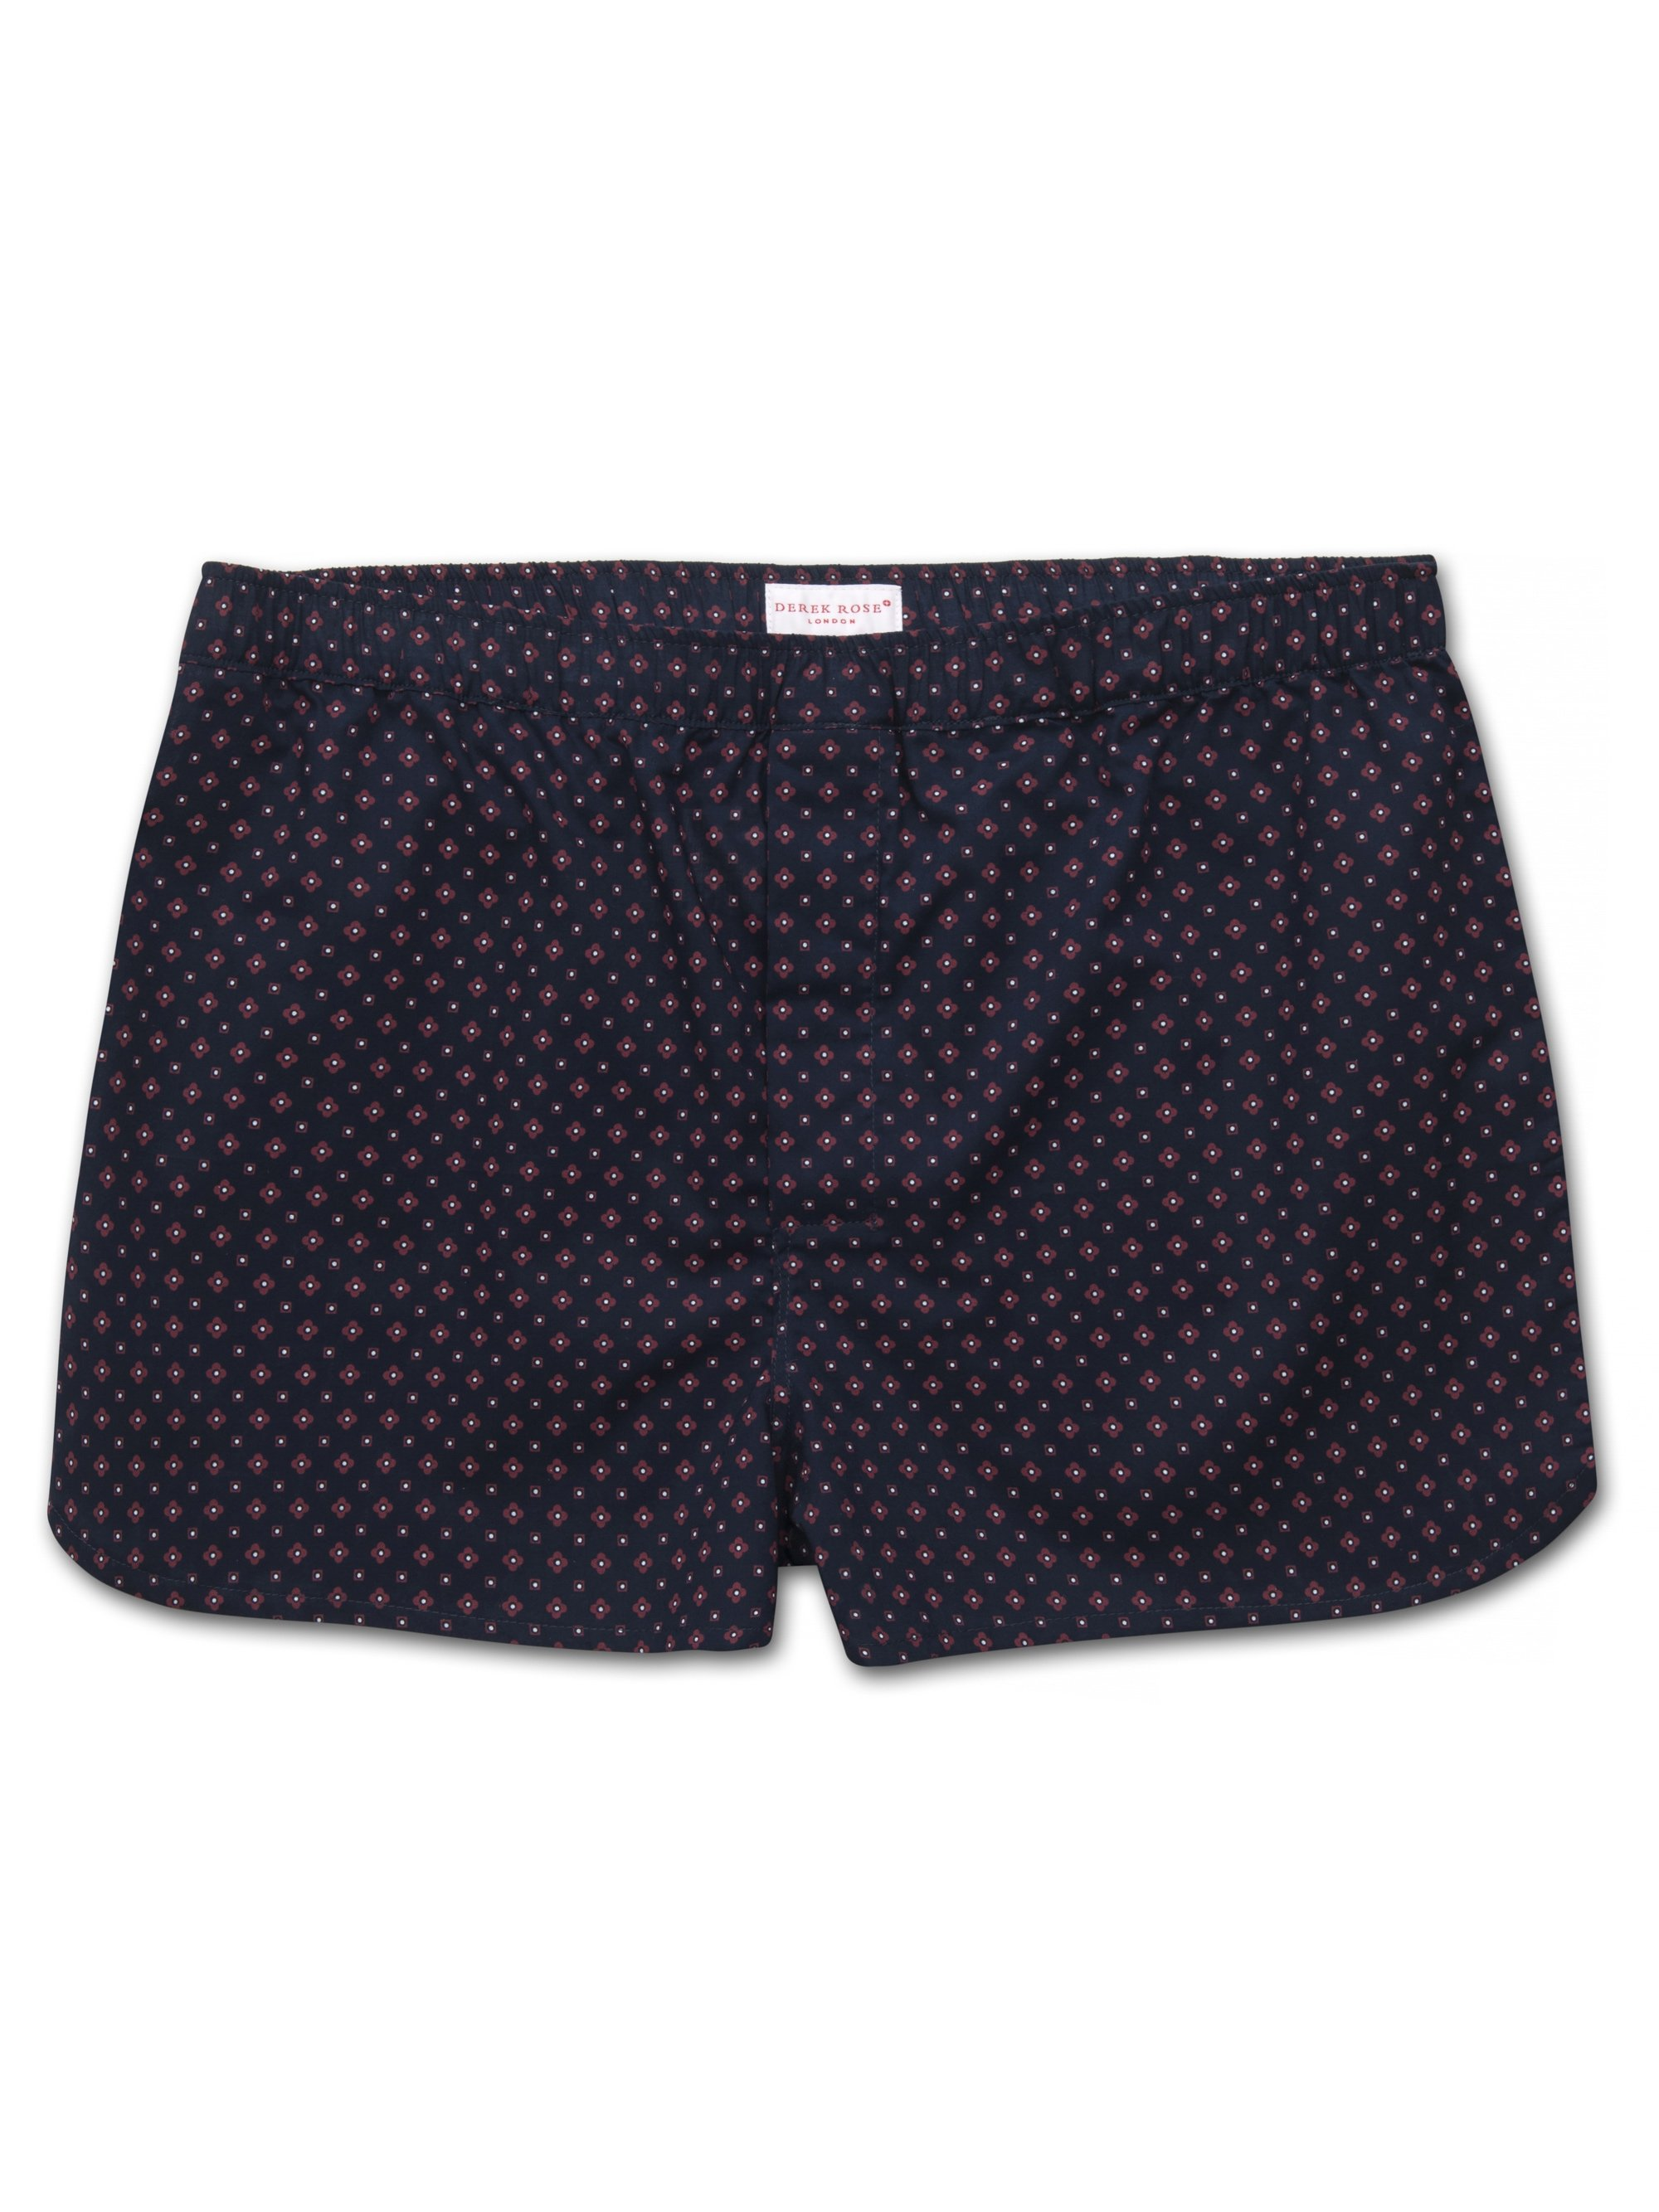 Men's Modern Fit Boxer Shorts Nelson 72 Cotton Batiste Navy